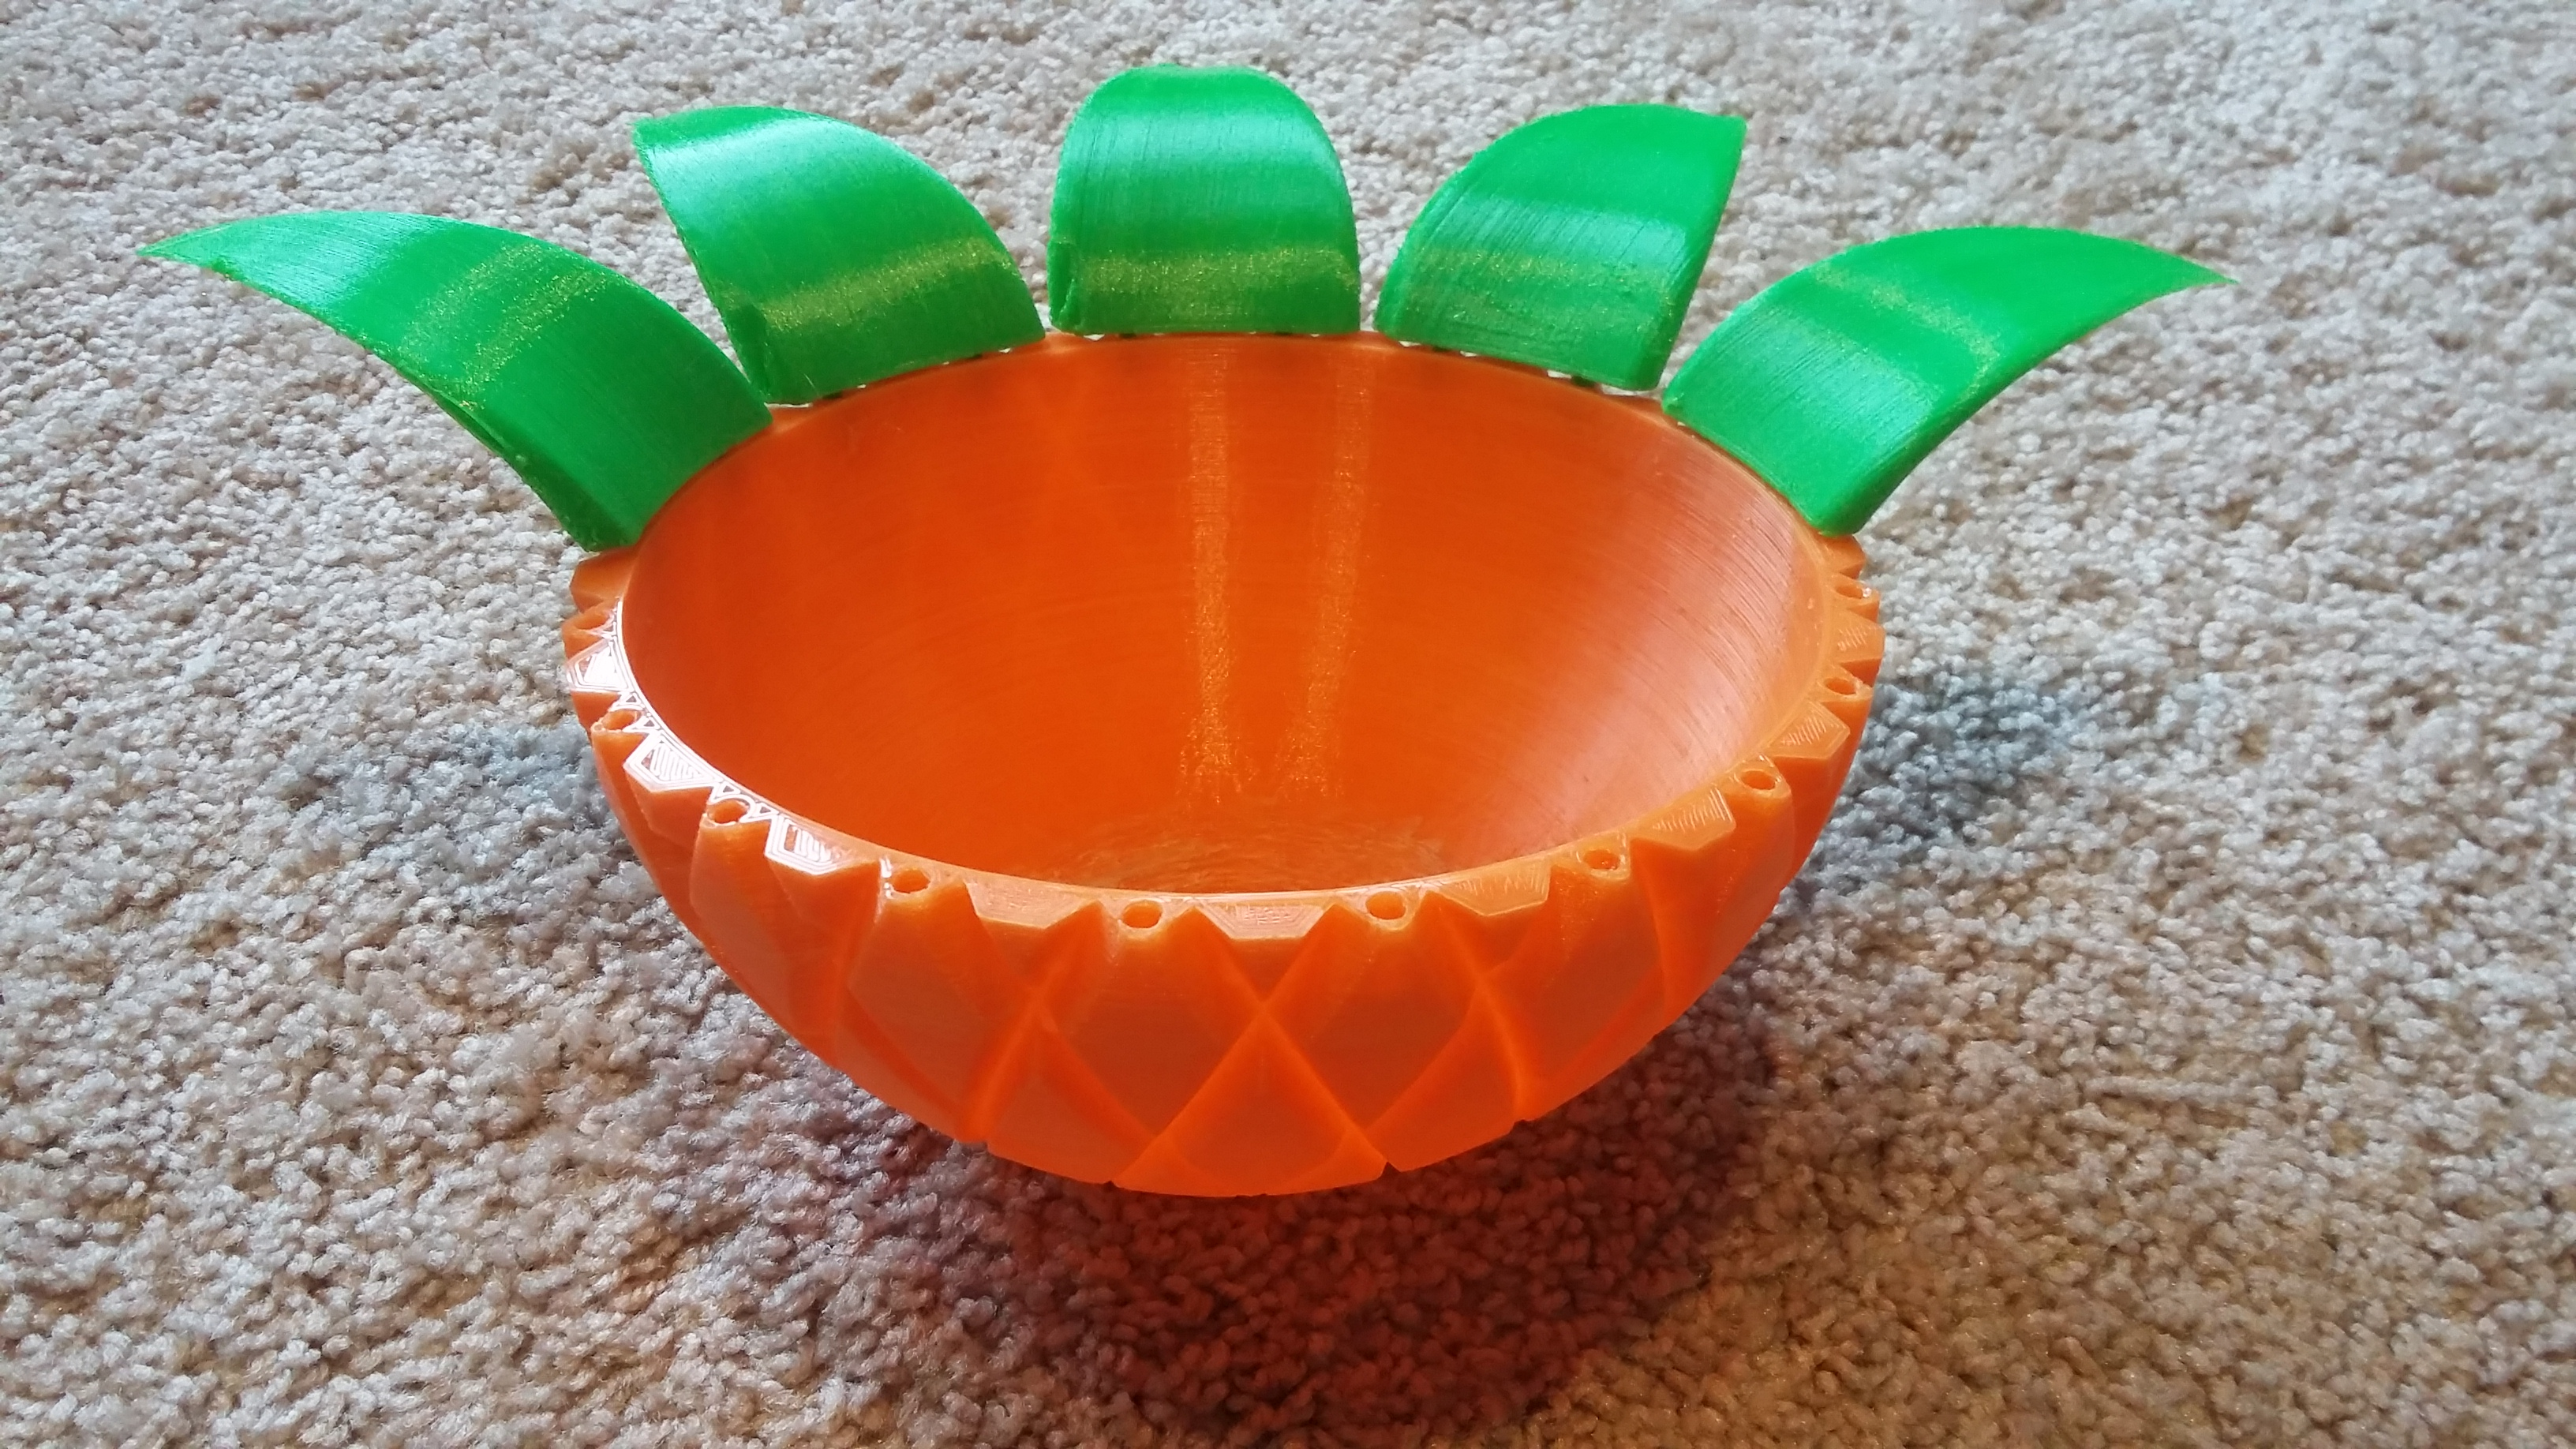 Pineapple-inspired bowl (orange) with green leaves surrounding the edge. Only five of the 10 leaves are finished.